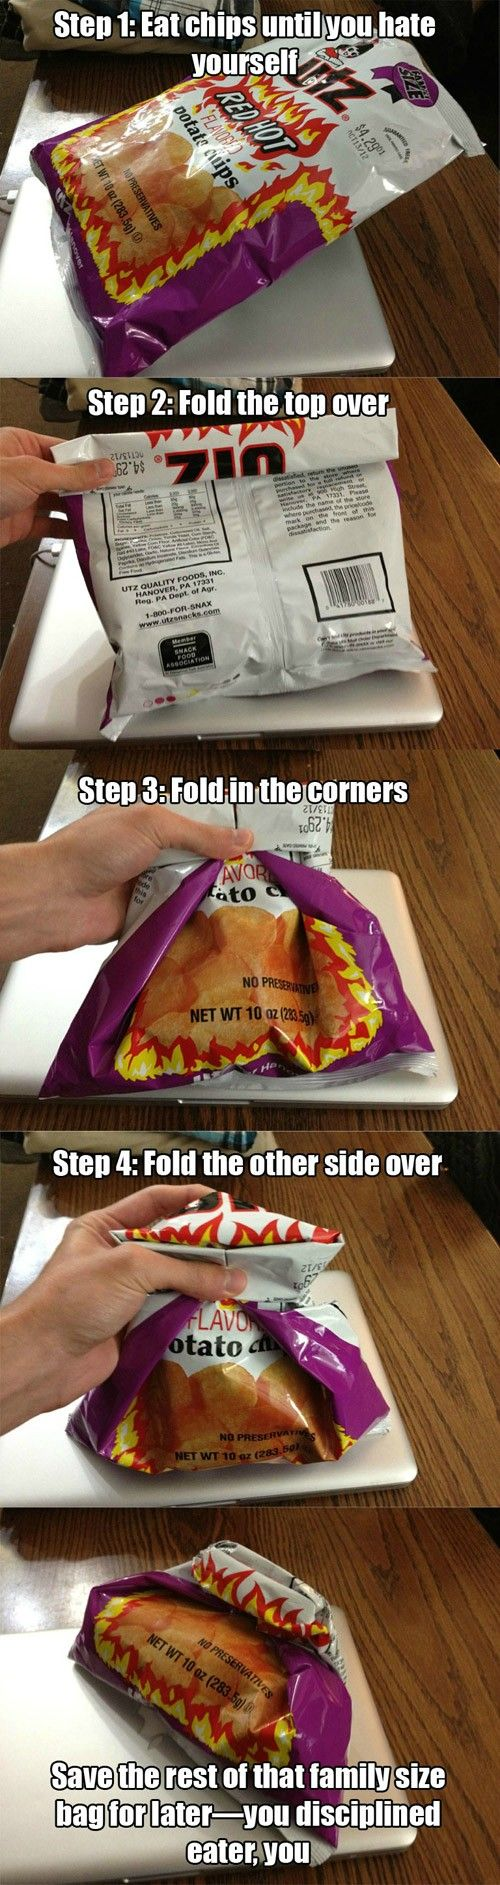 handy hints, from how to keep ice cream soft (put the whole container in a zipped plastic bag) to folding a CD holder from an 8X10 piece of paper